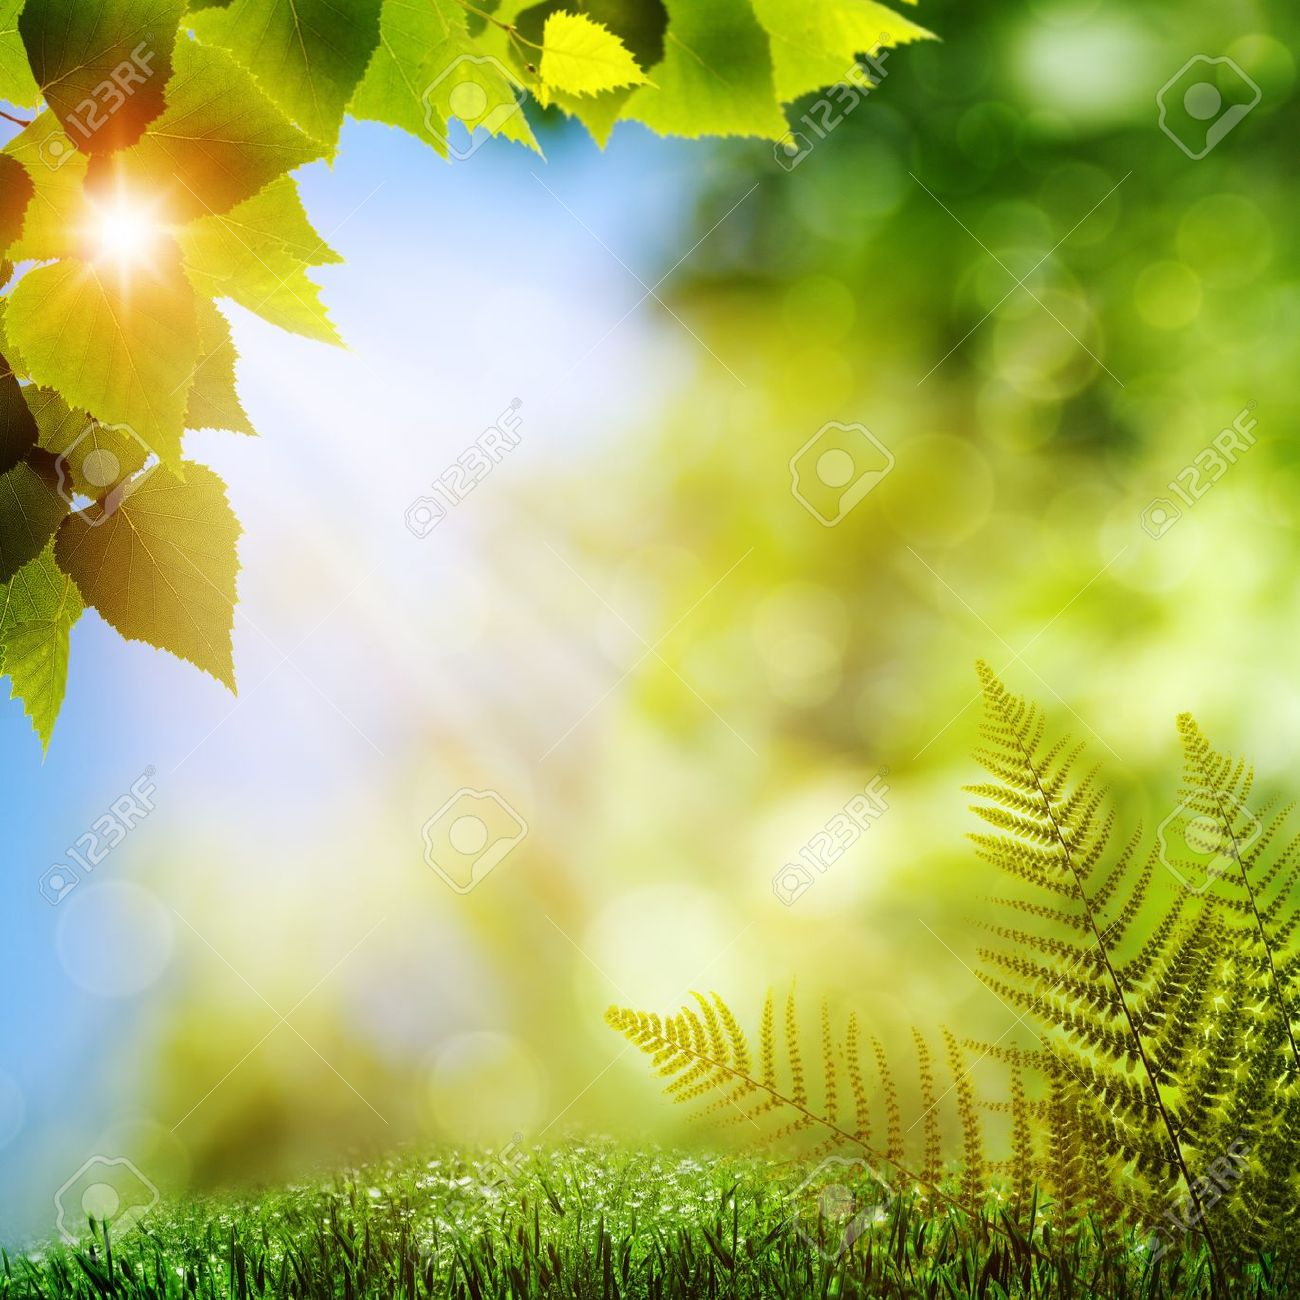 In the forest. Natural backgrounds with fern foliage Stock Photo - 14717562